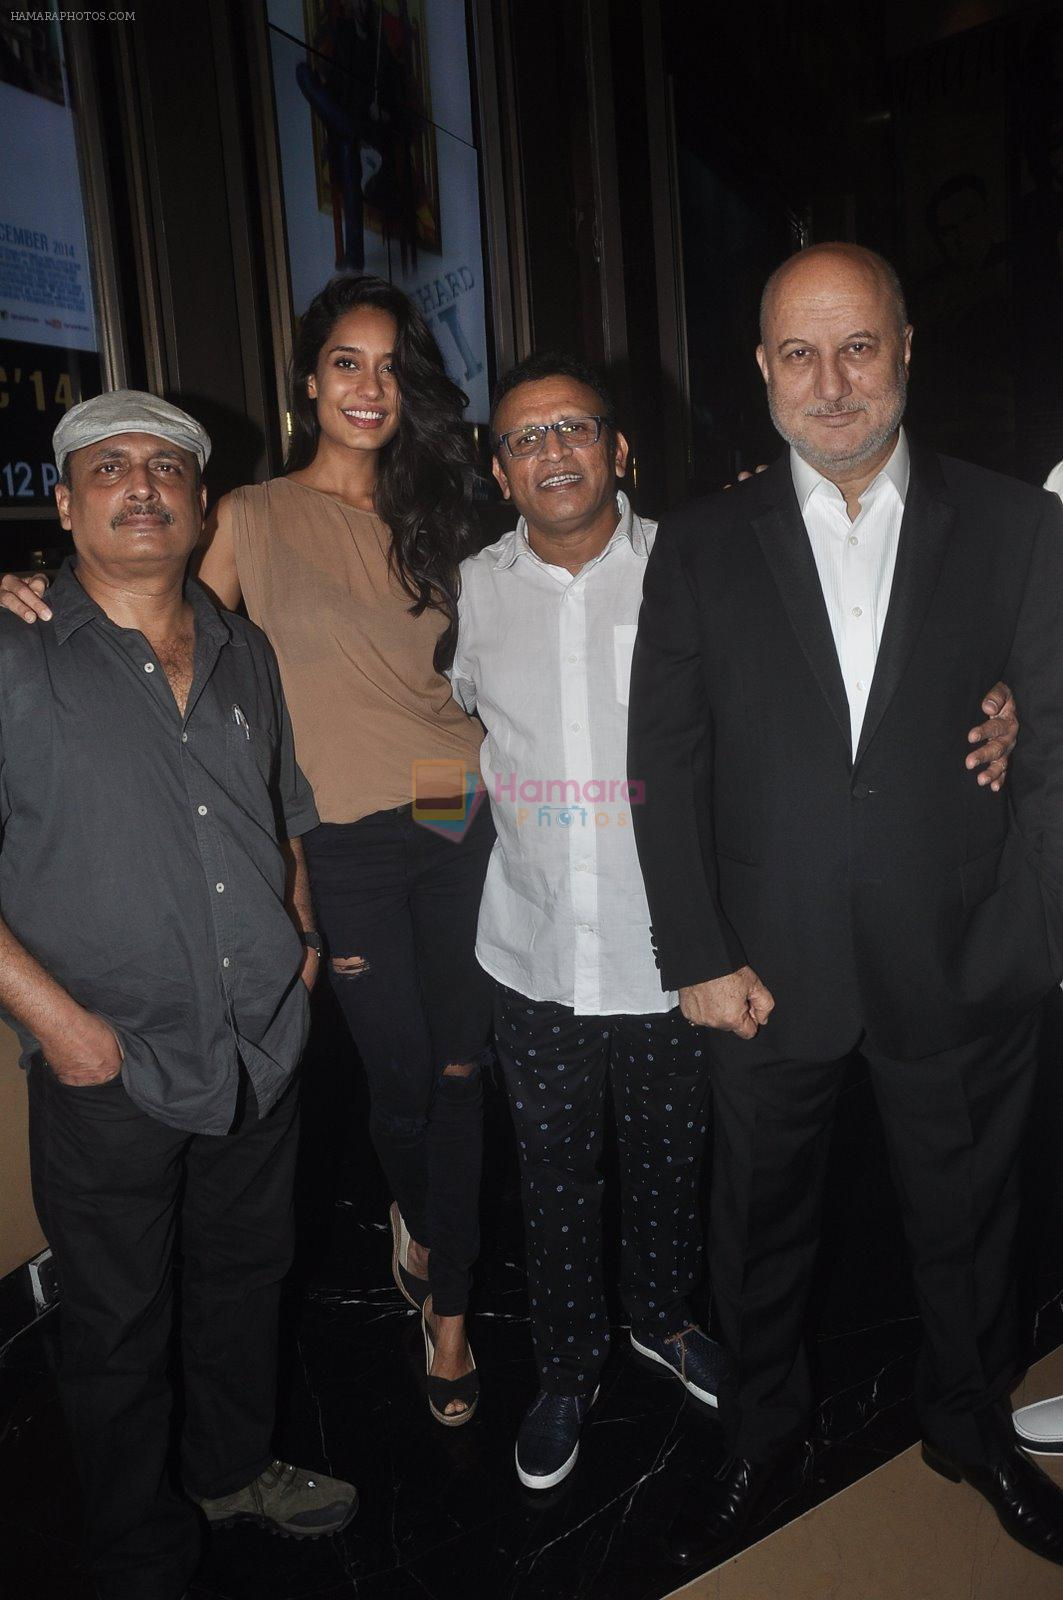 Anupam Kher, Annu Kapoor, Piyush Mishra, Lisa Haydon at The Shaukeens premiere in PVR, Mumbai on 6th Nov 2014